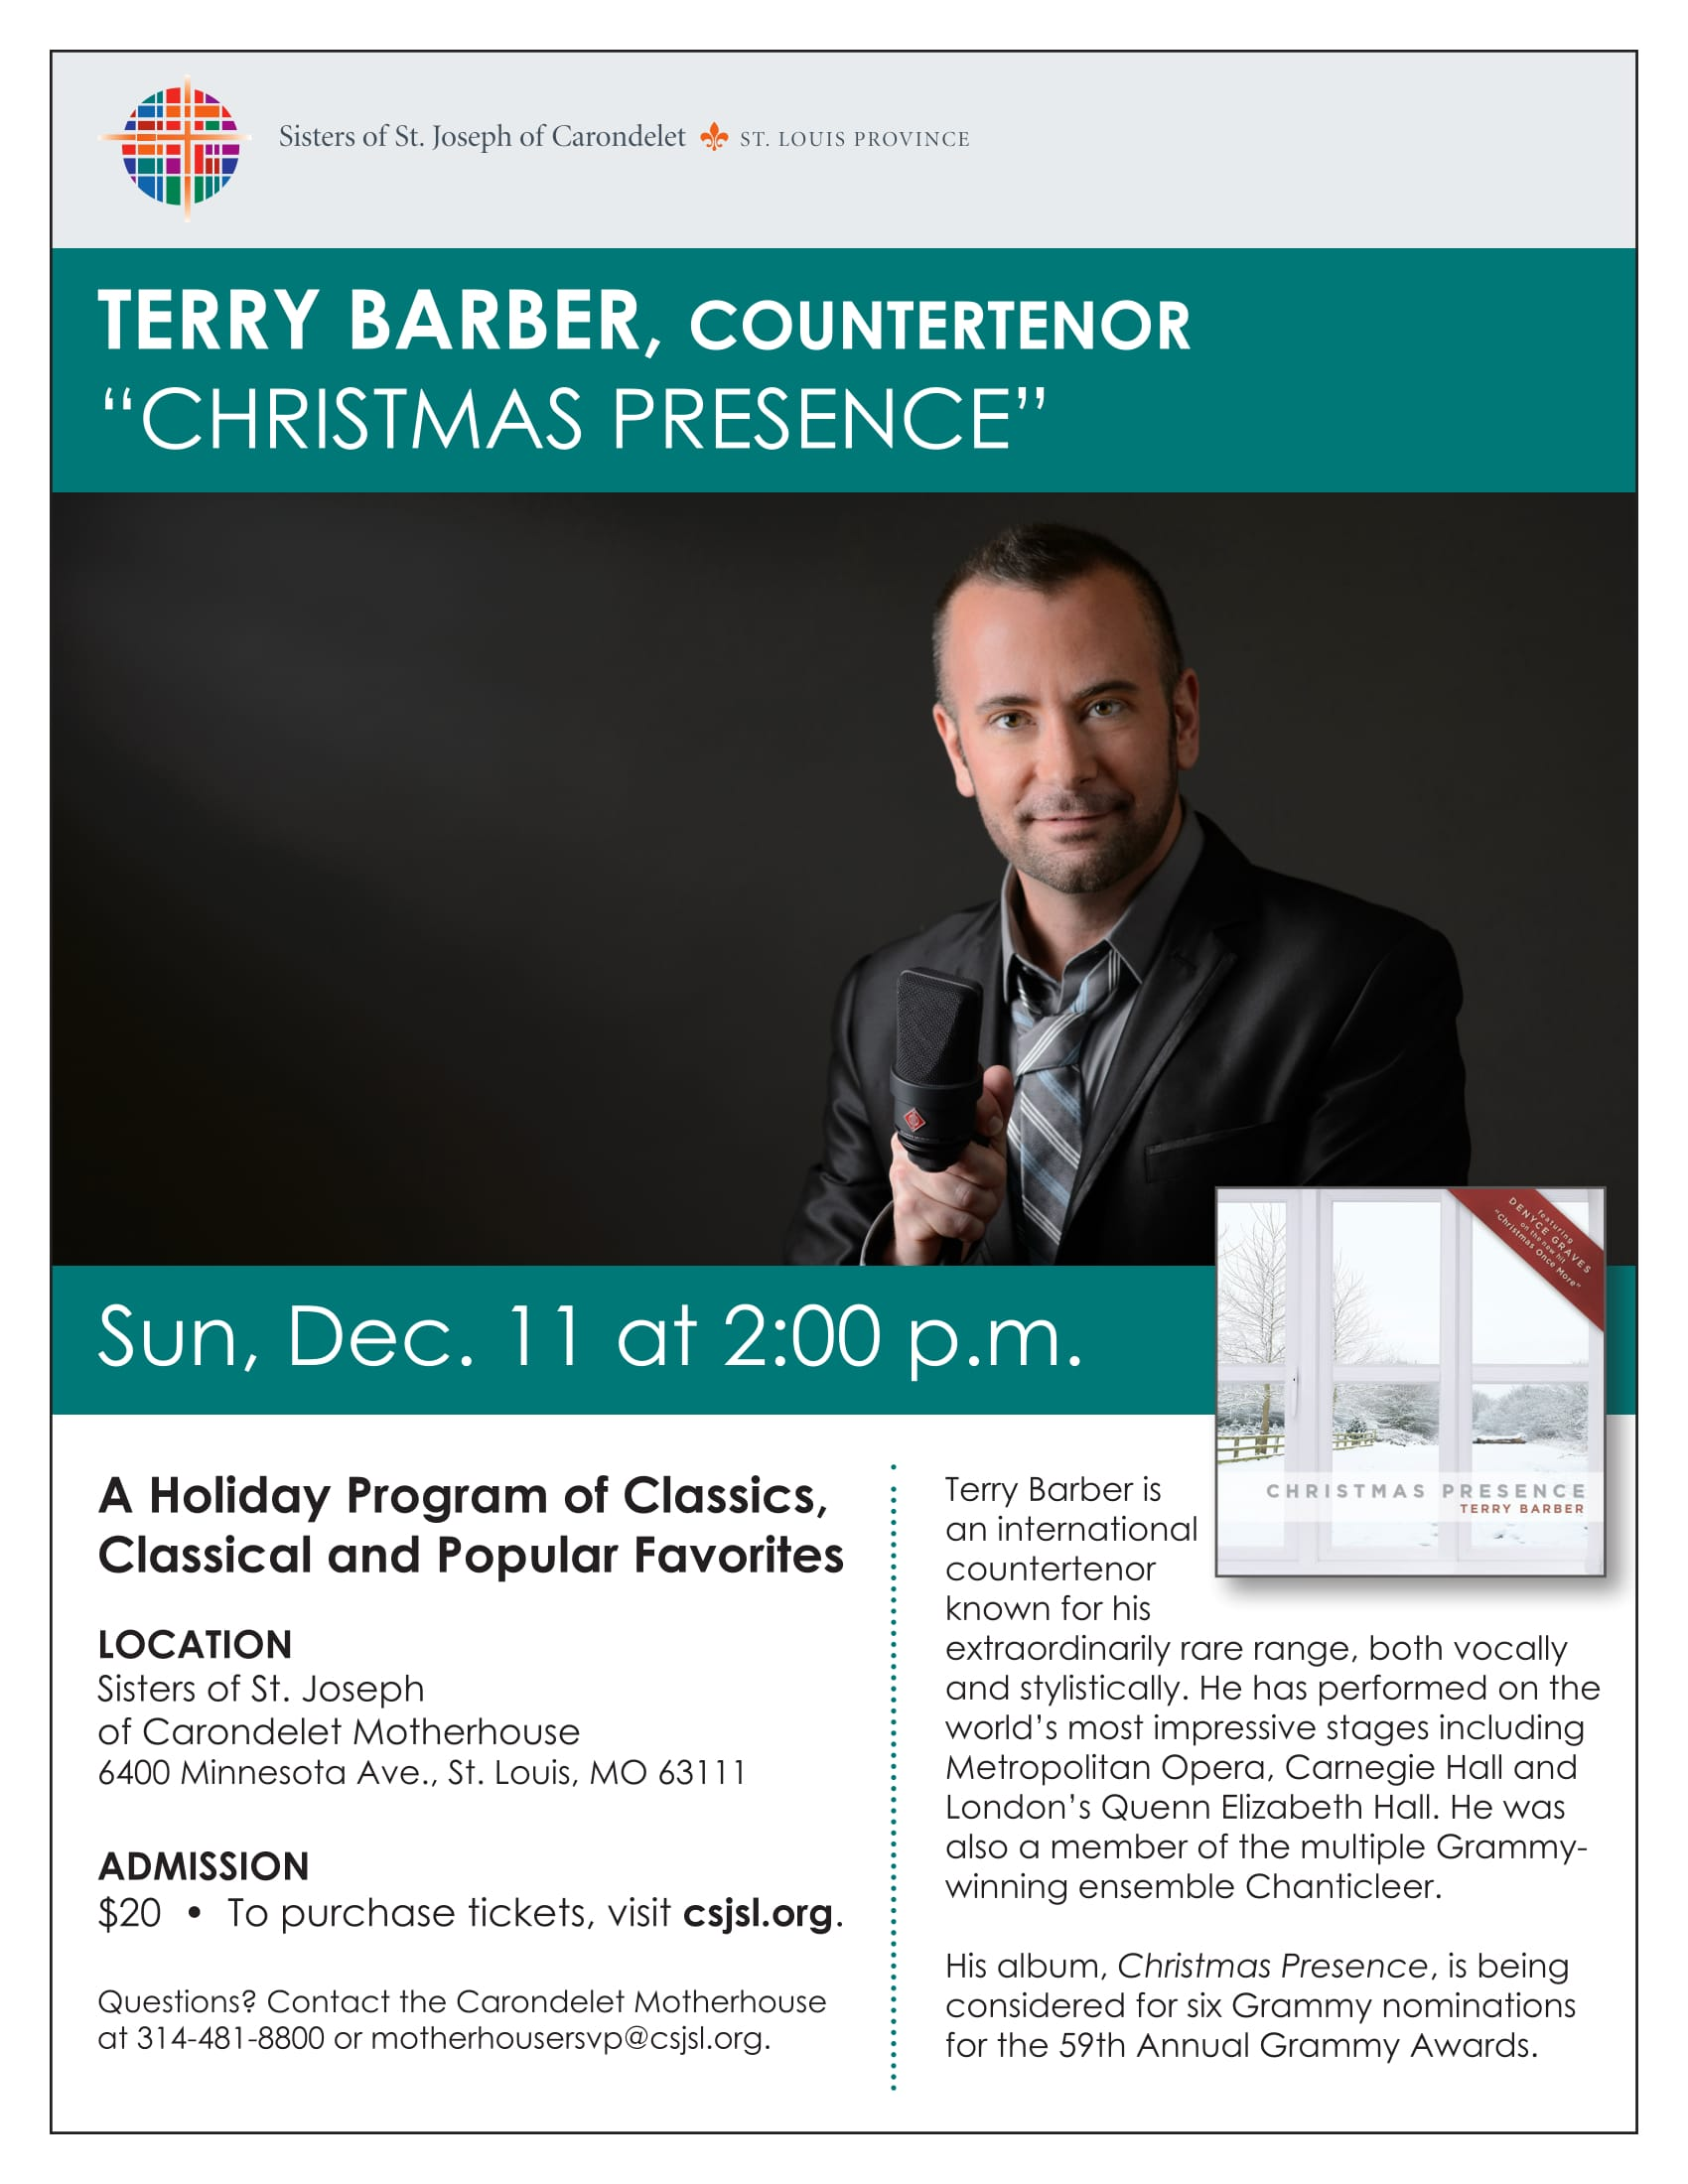 terry-barber-concert-flyer-1